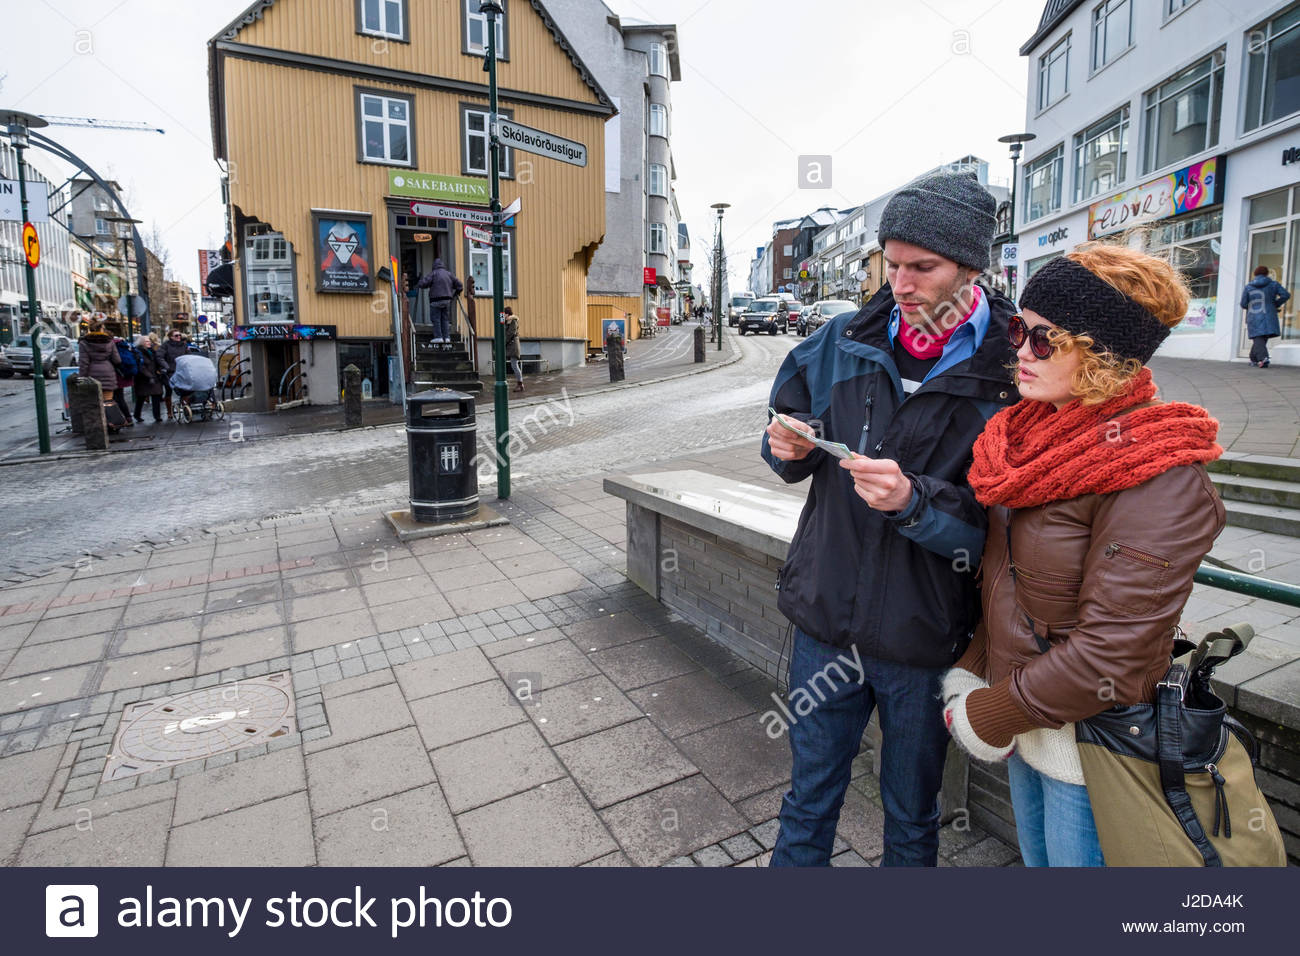 Young couple looking at map, Laugavegur, Miðborg, Reykjavík, Iceland - Stock Image